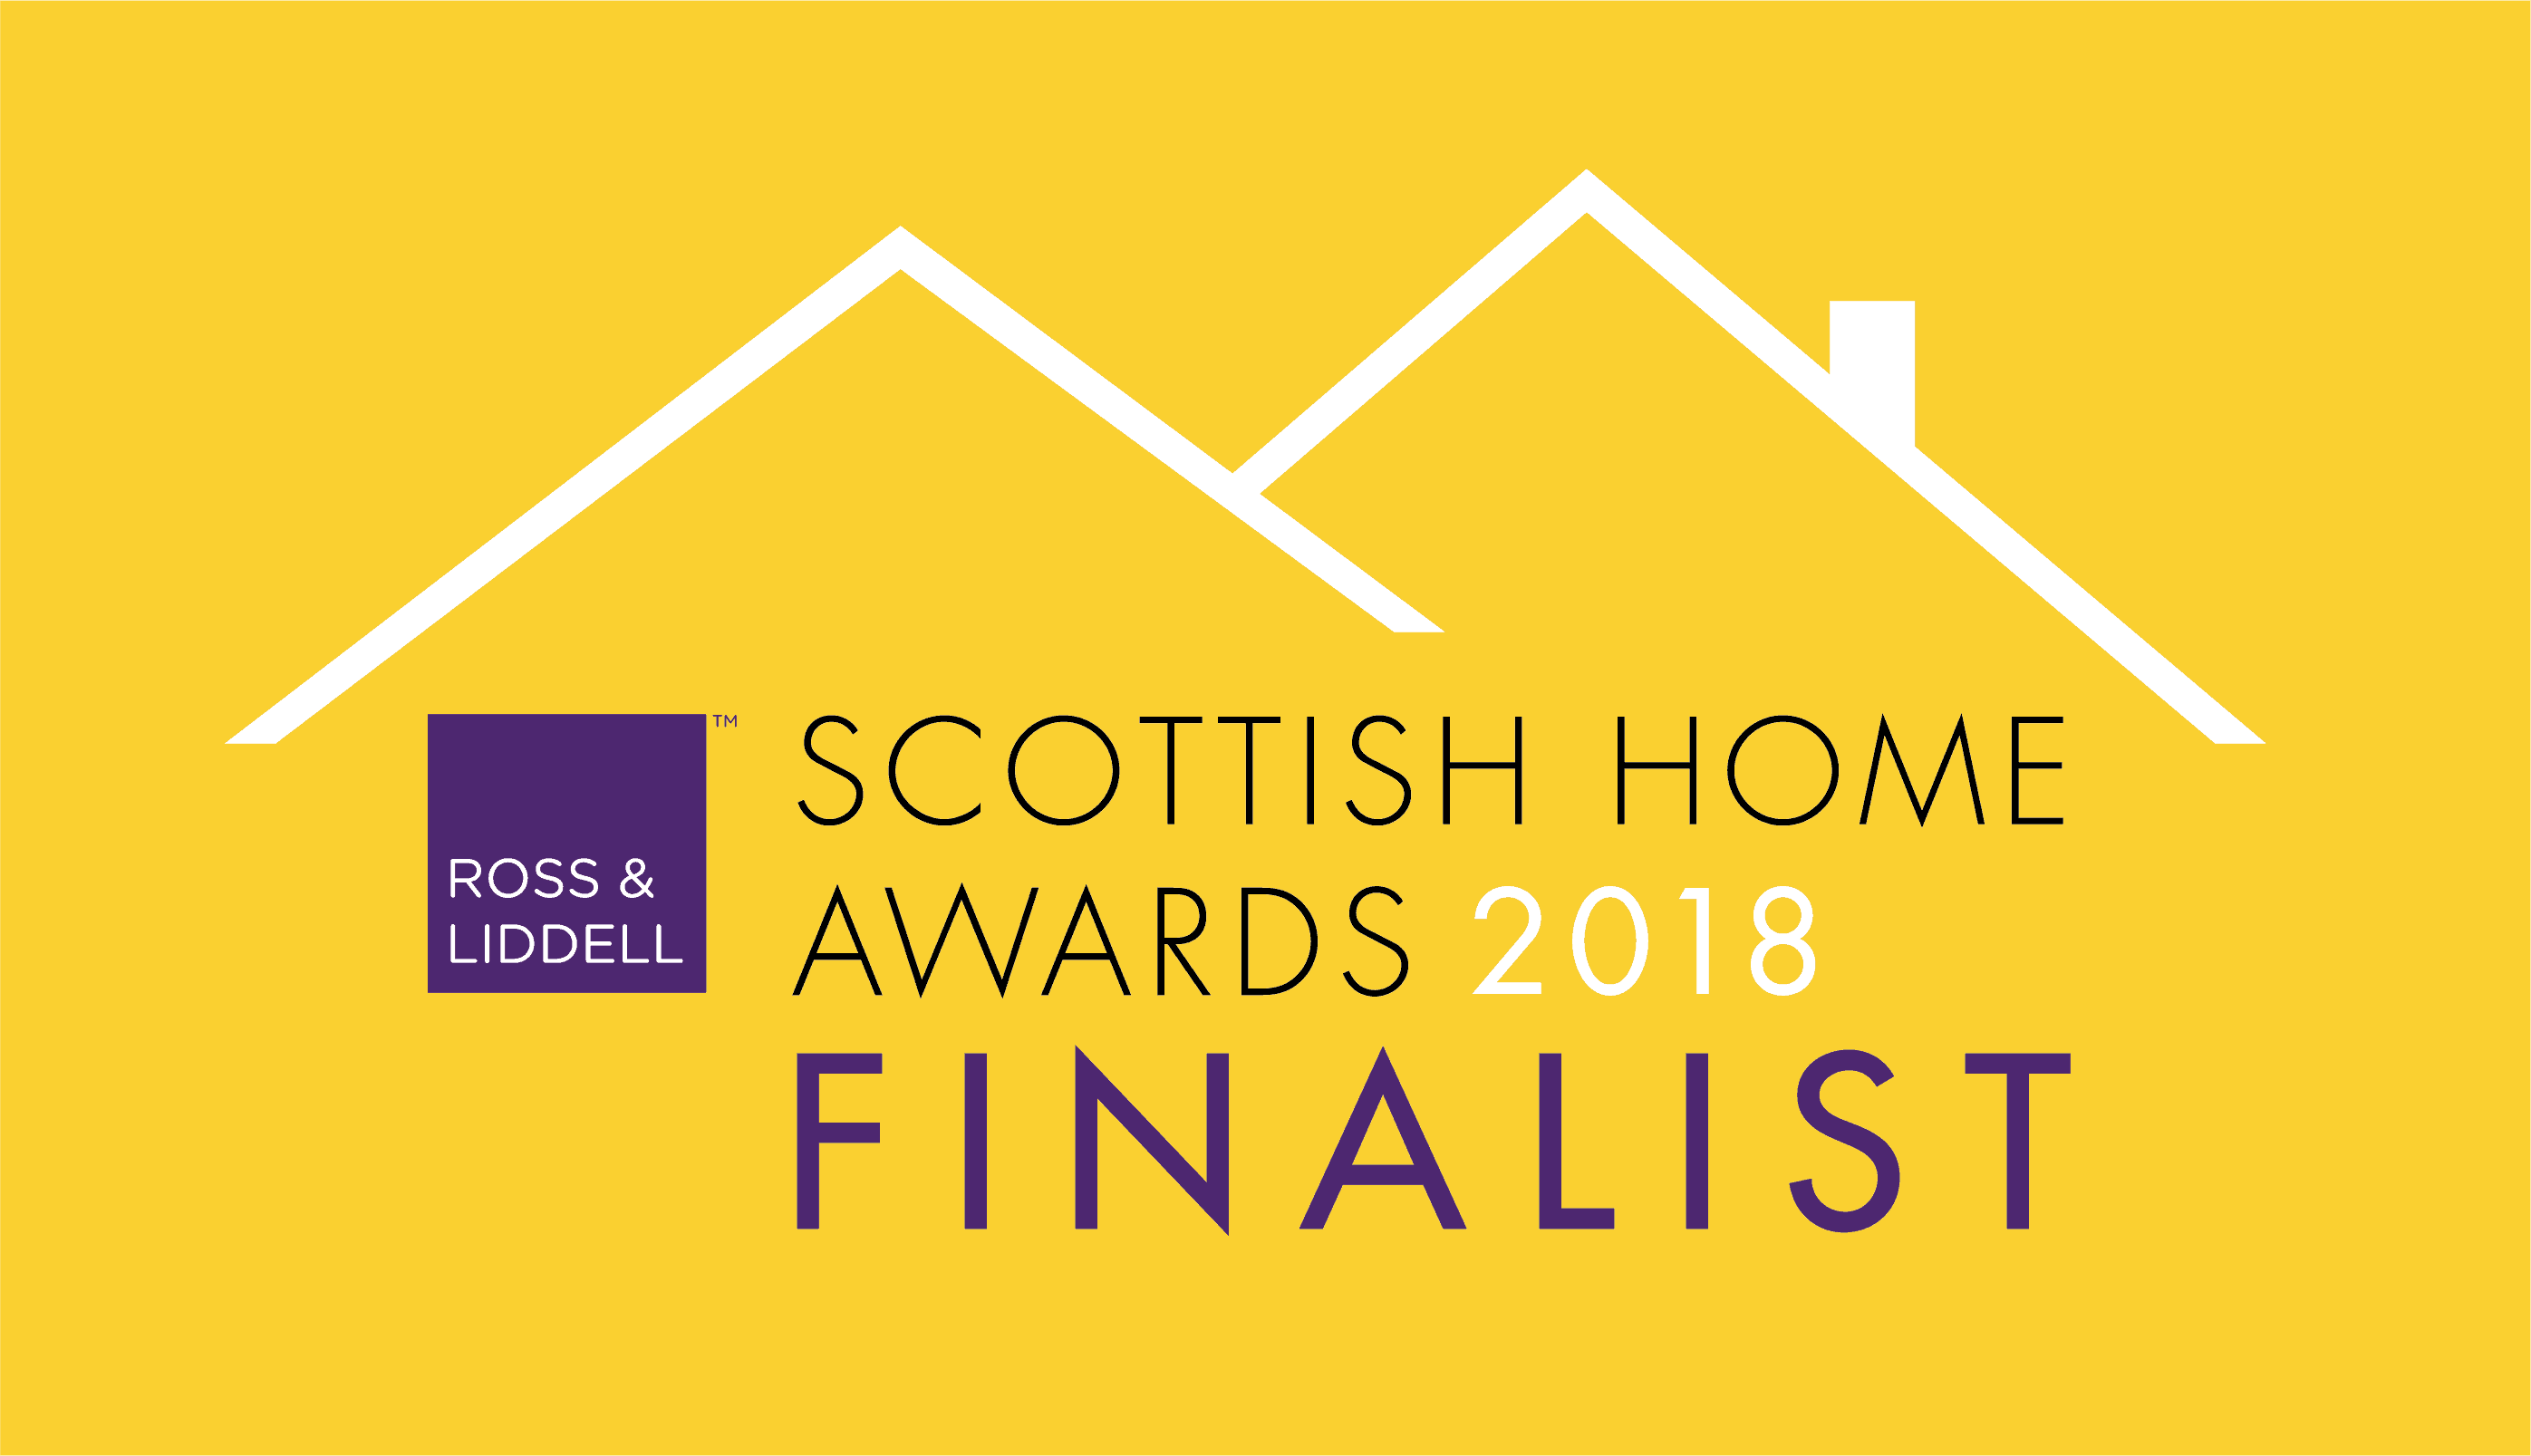 Scottish Home Awards finalists